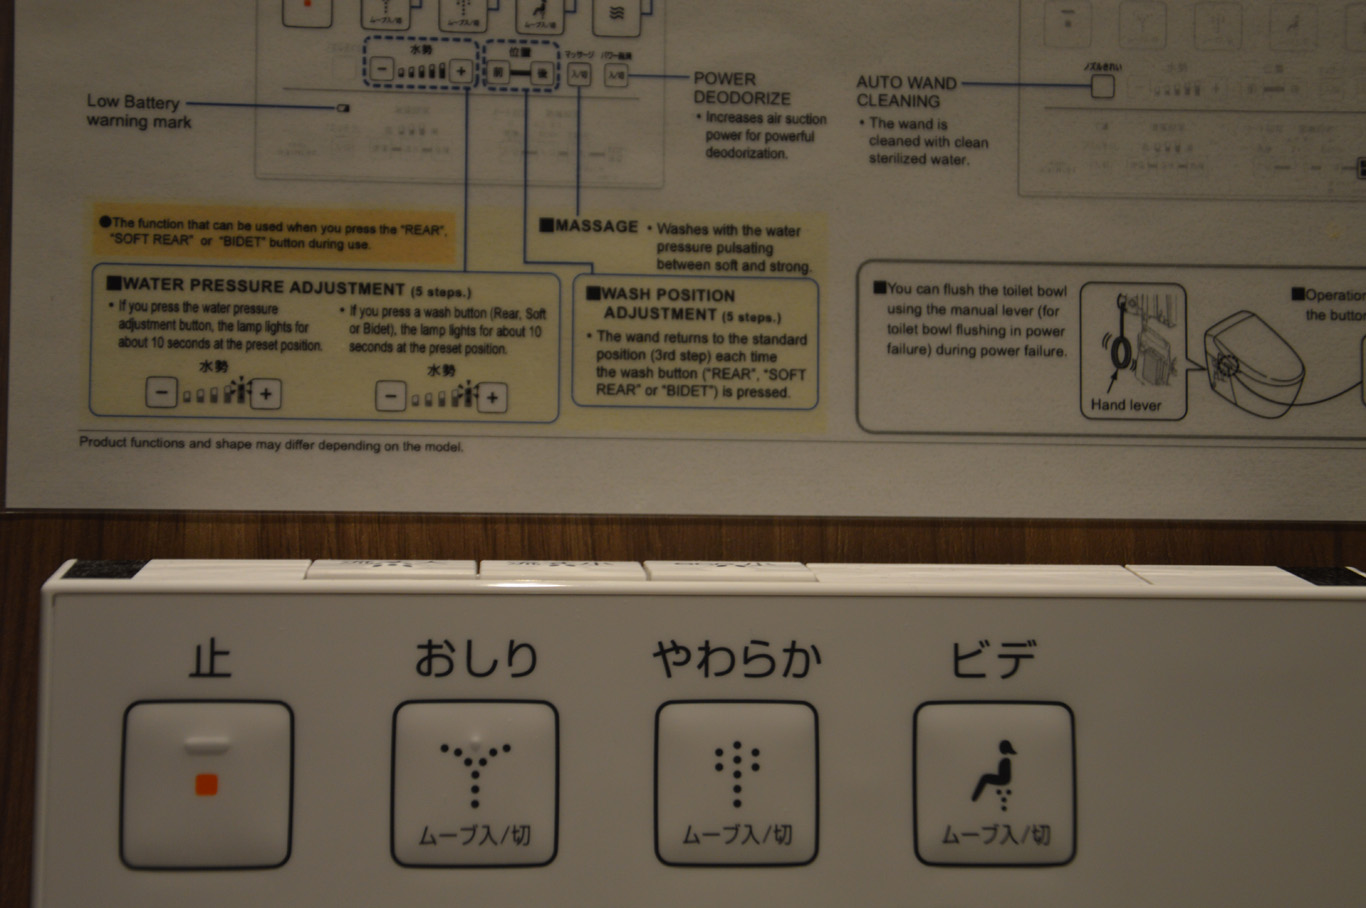 Instructions on how to use a toilet